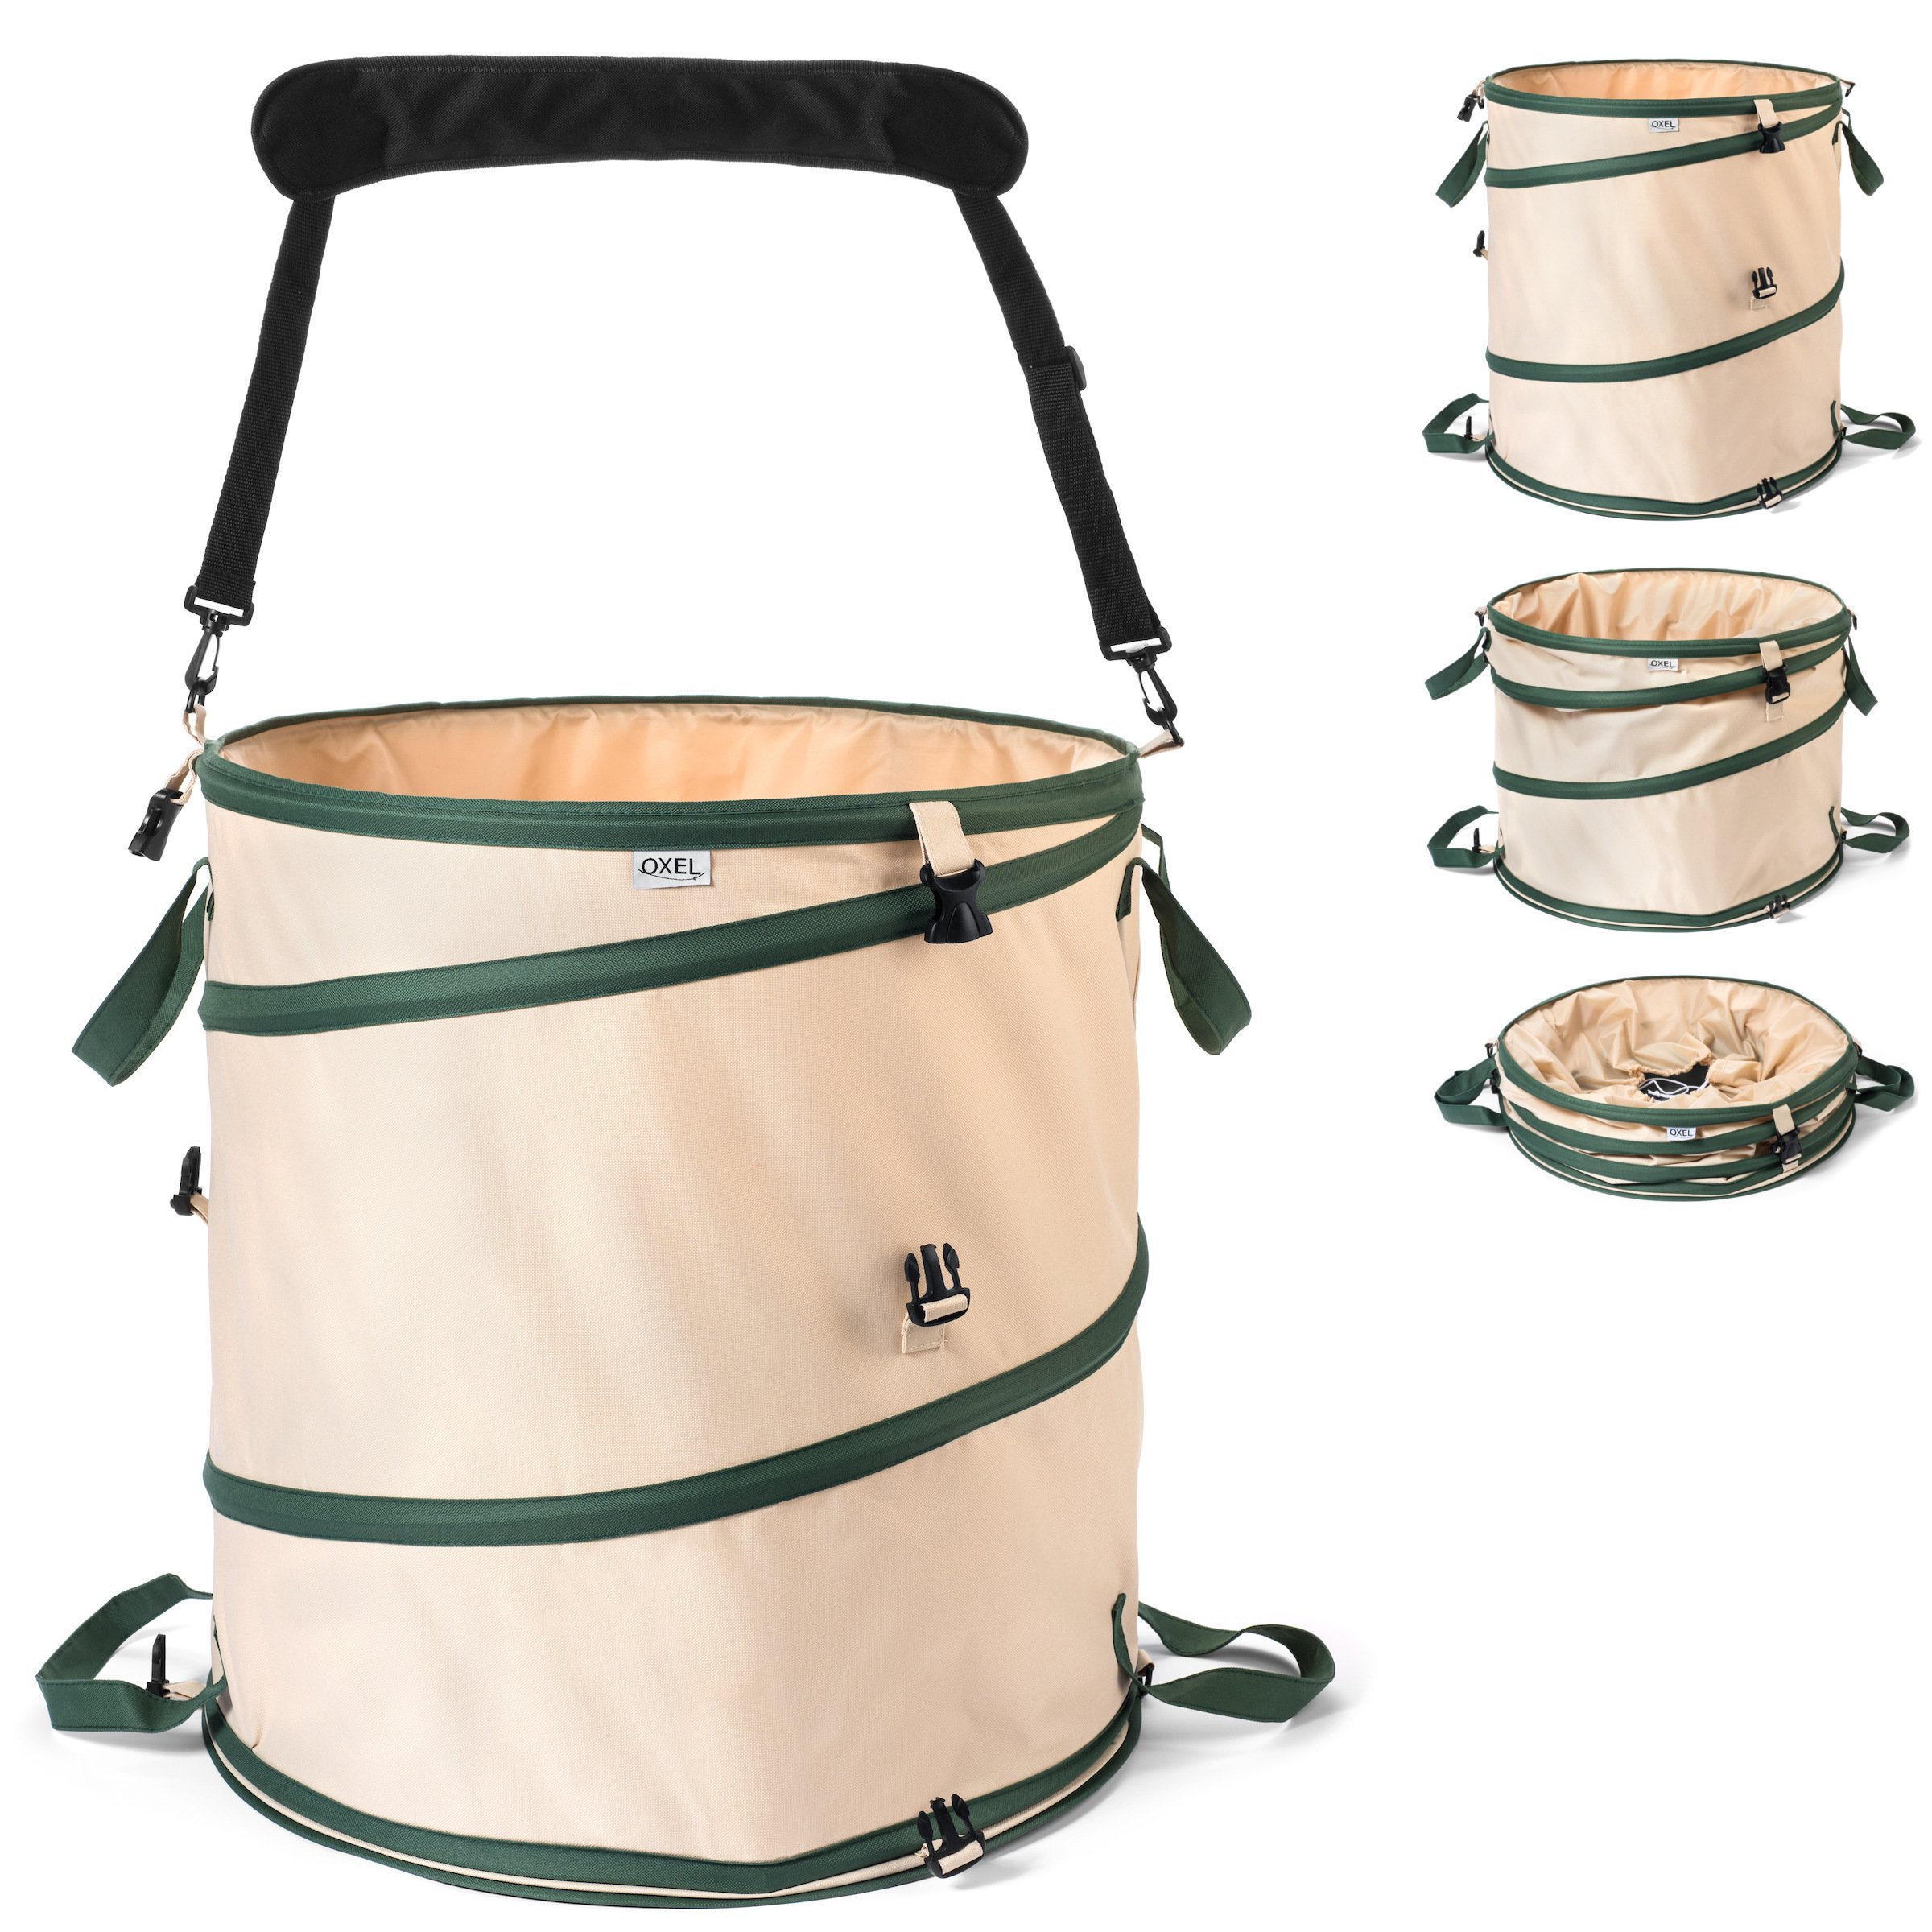 Oxel Heavy Duty, Puncture Resistant Reusable Leaf and Garden Bag for 30 Gallon Trash Bags - Collapsible with 4 Handles + Removable Shoulder Strap